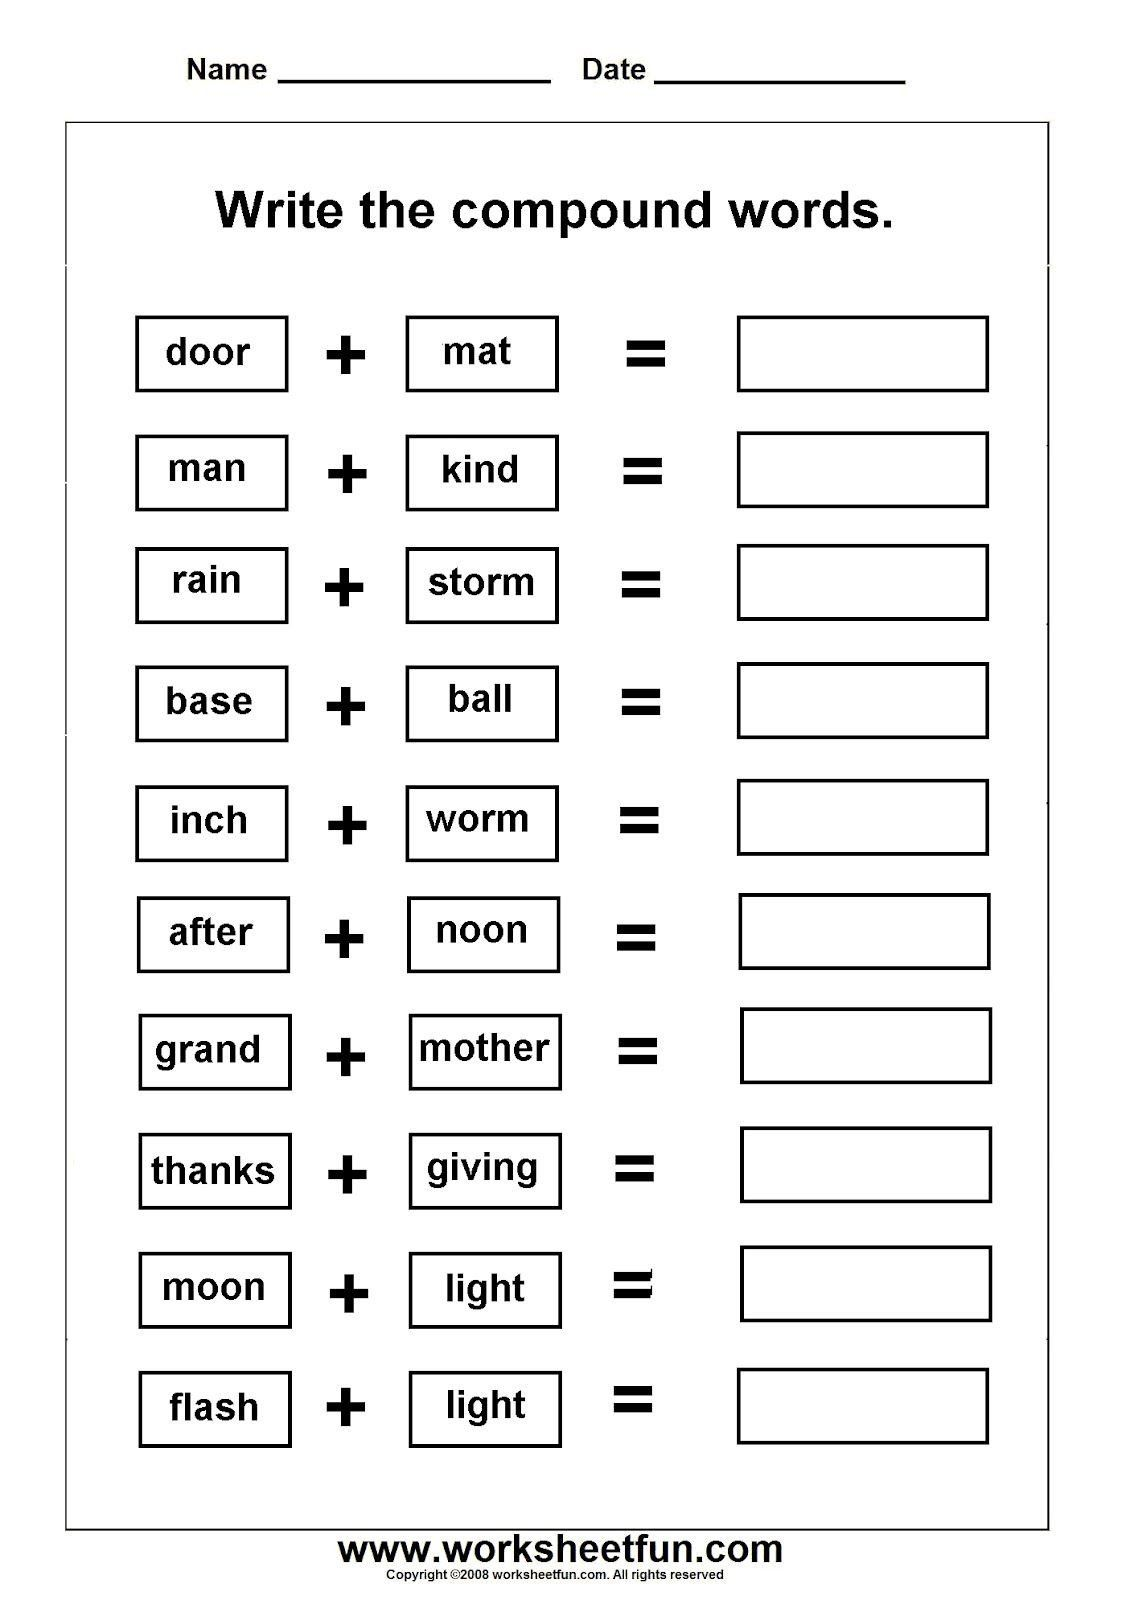 Compound Word Worksheet First Grade Pound Words Worksheets In 2020 Compound Words Worksheets Compound Words Phonics Worksheets